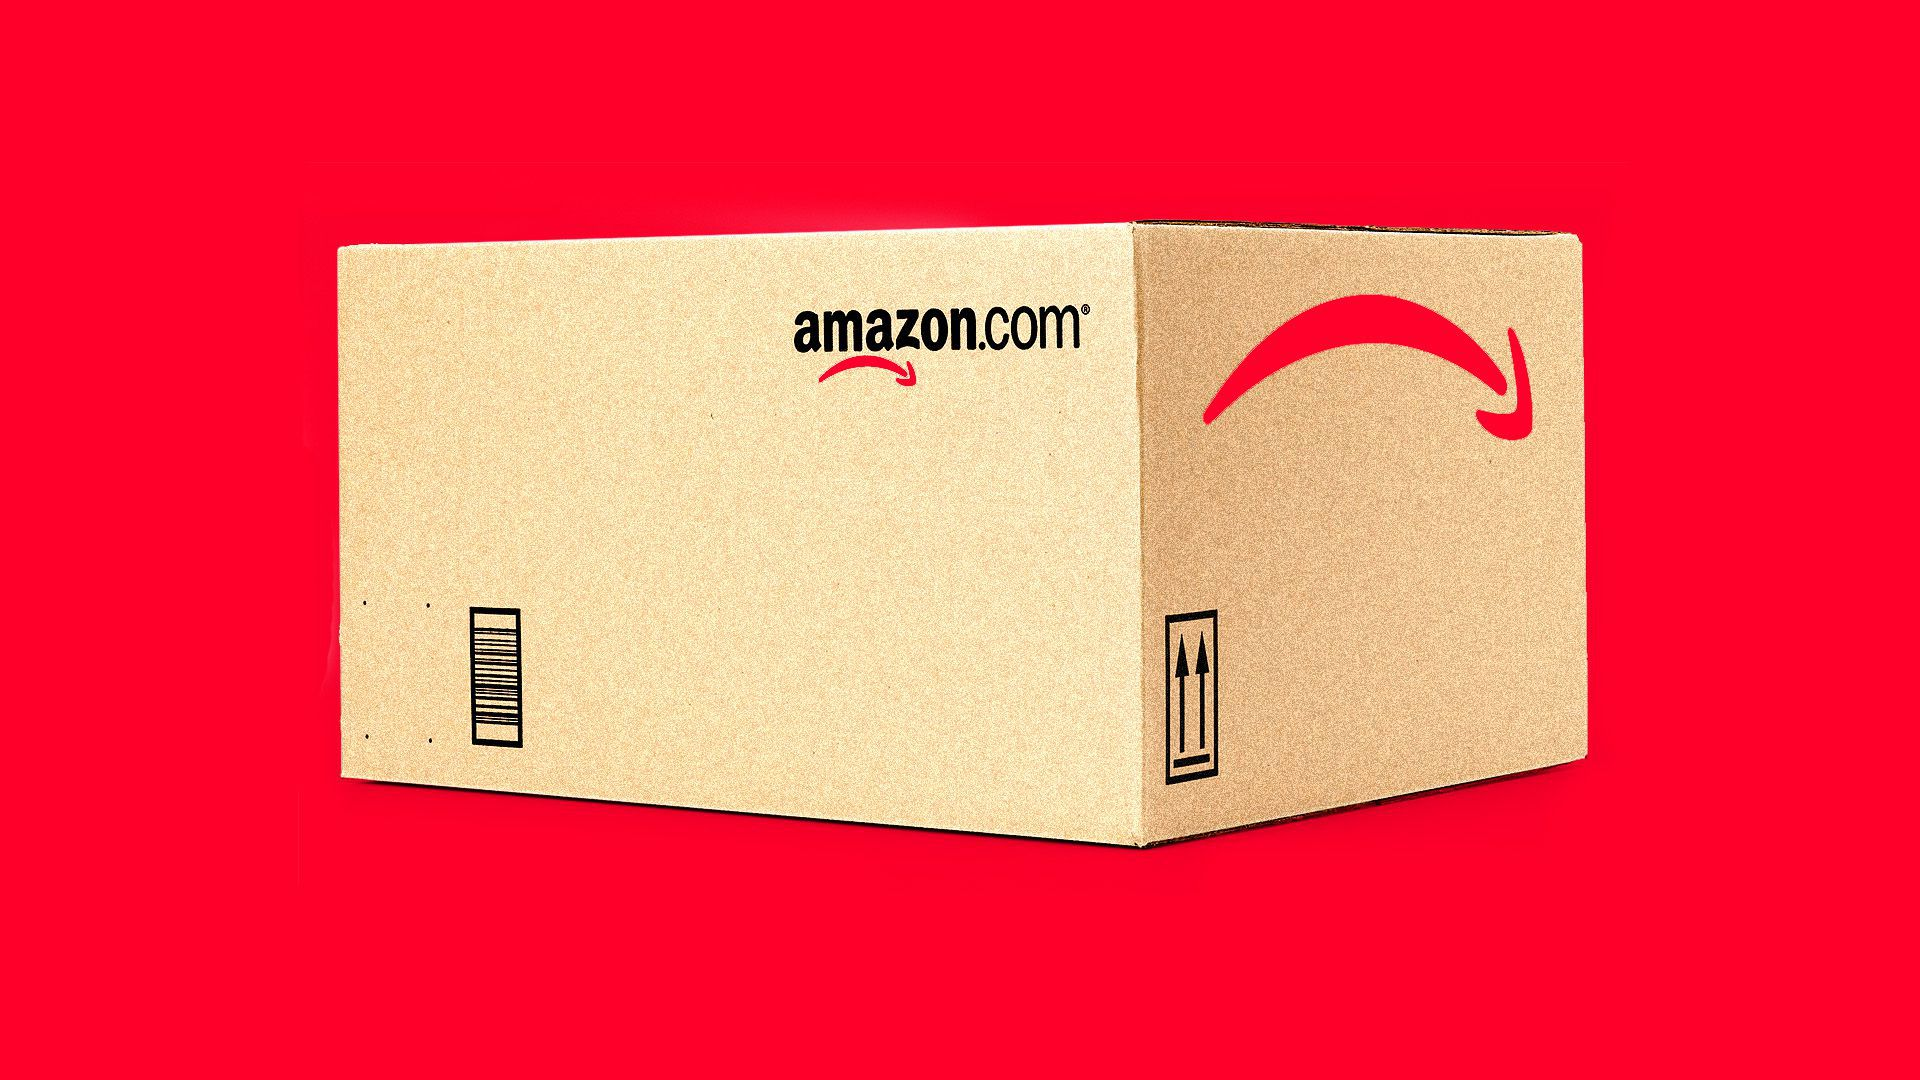 Illustration of Amazon box with red background